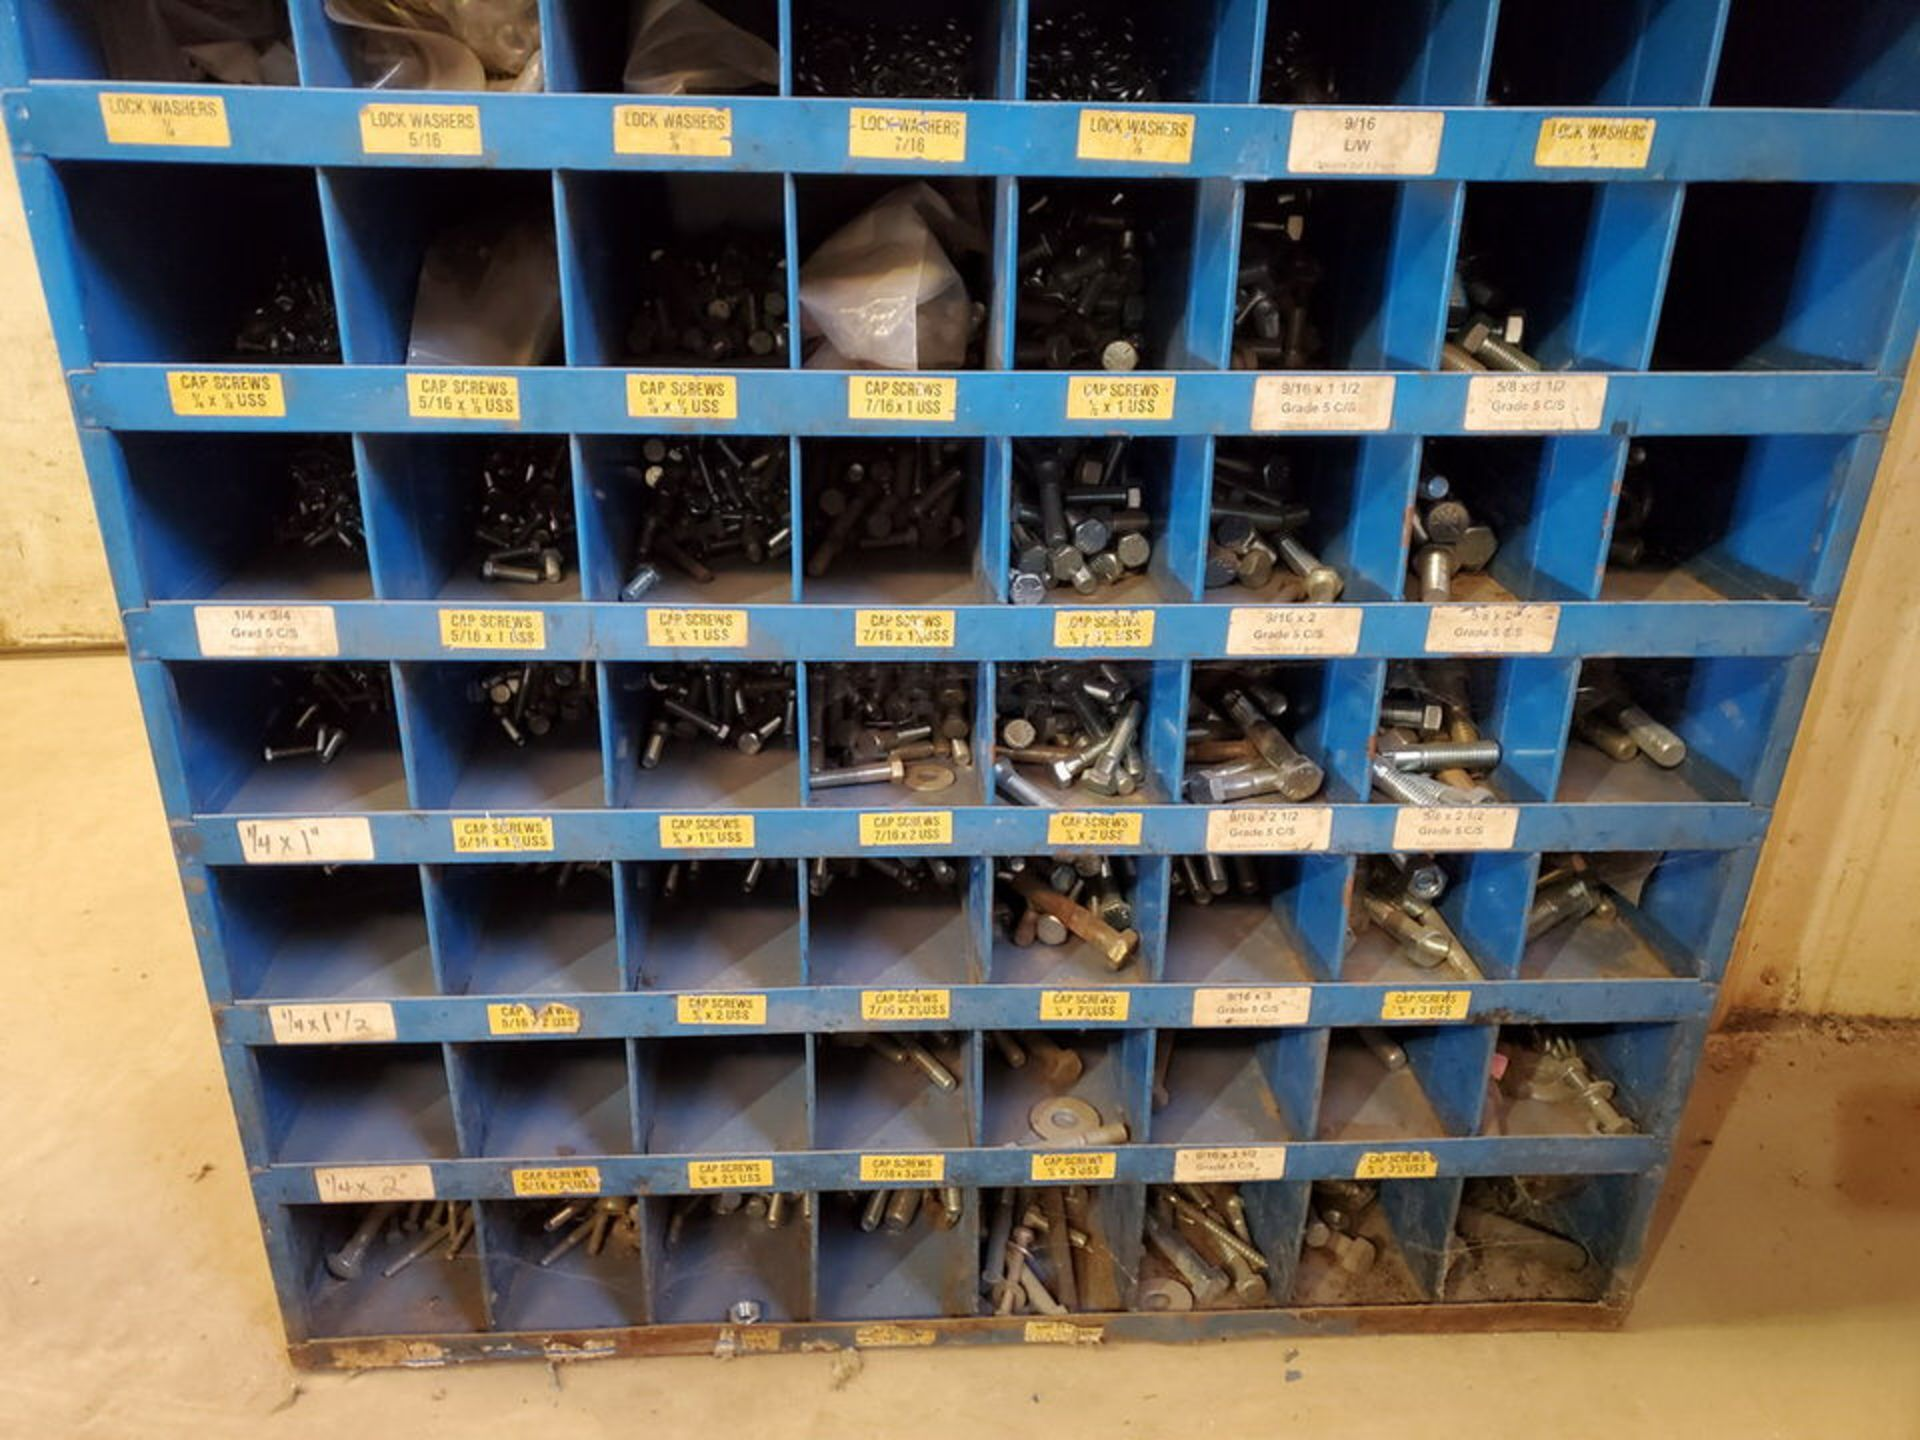 """(2) Parts Bins To Include But Not Limited To: Nuts, Bolts, Washers, etc. Size Range: 1/4""""-4"""" - Image 4 of 15"""